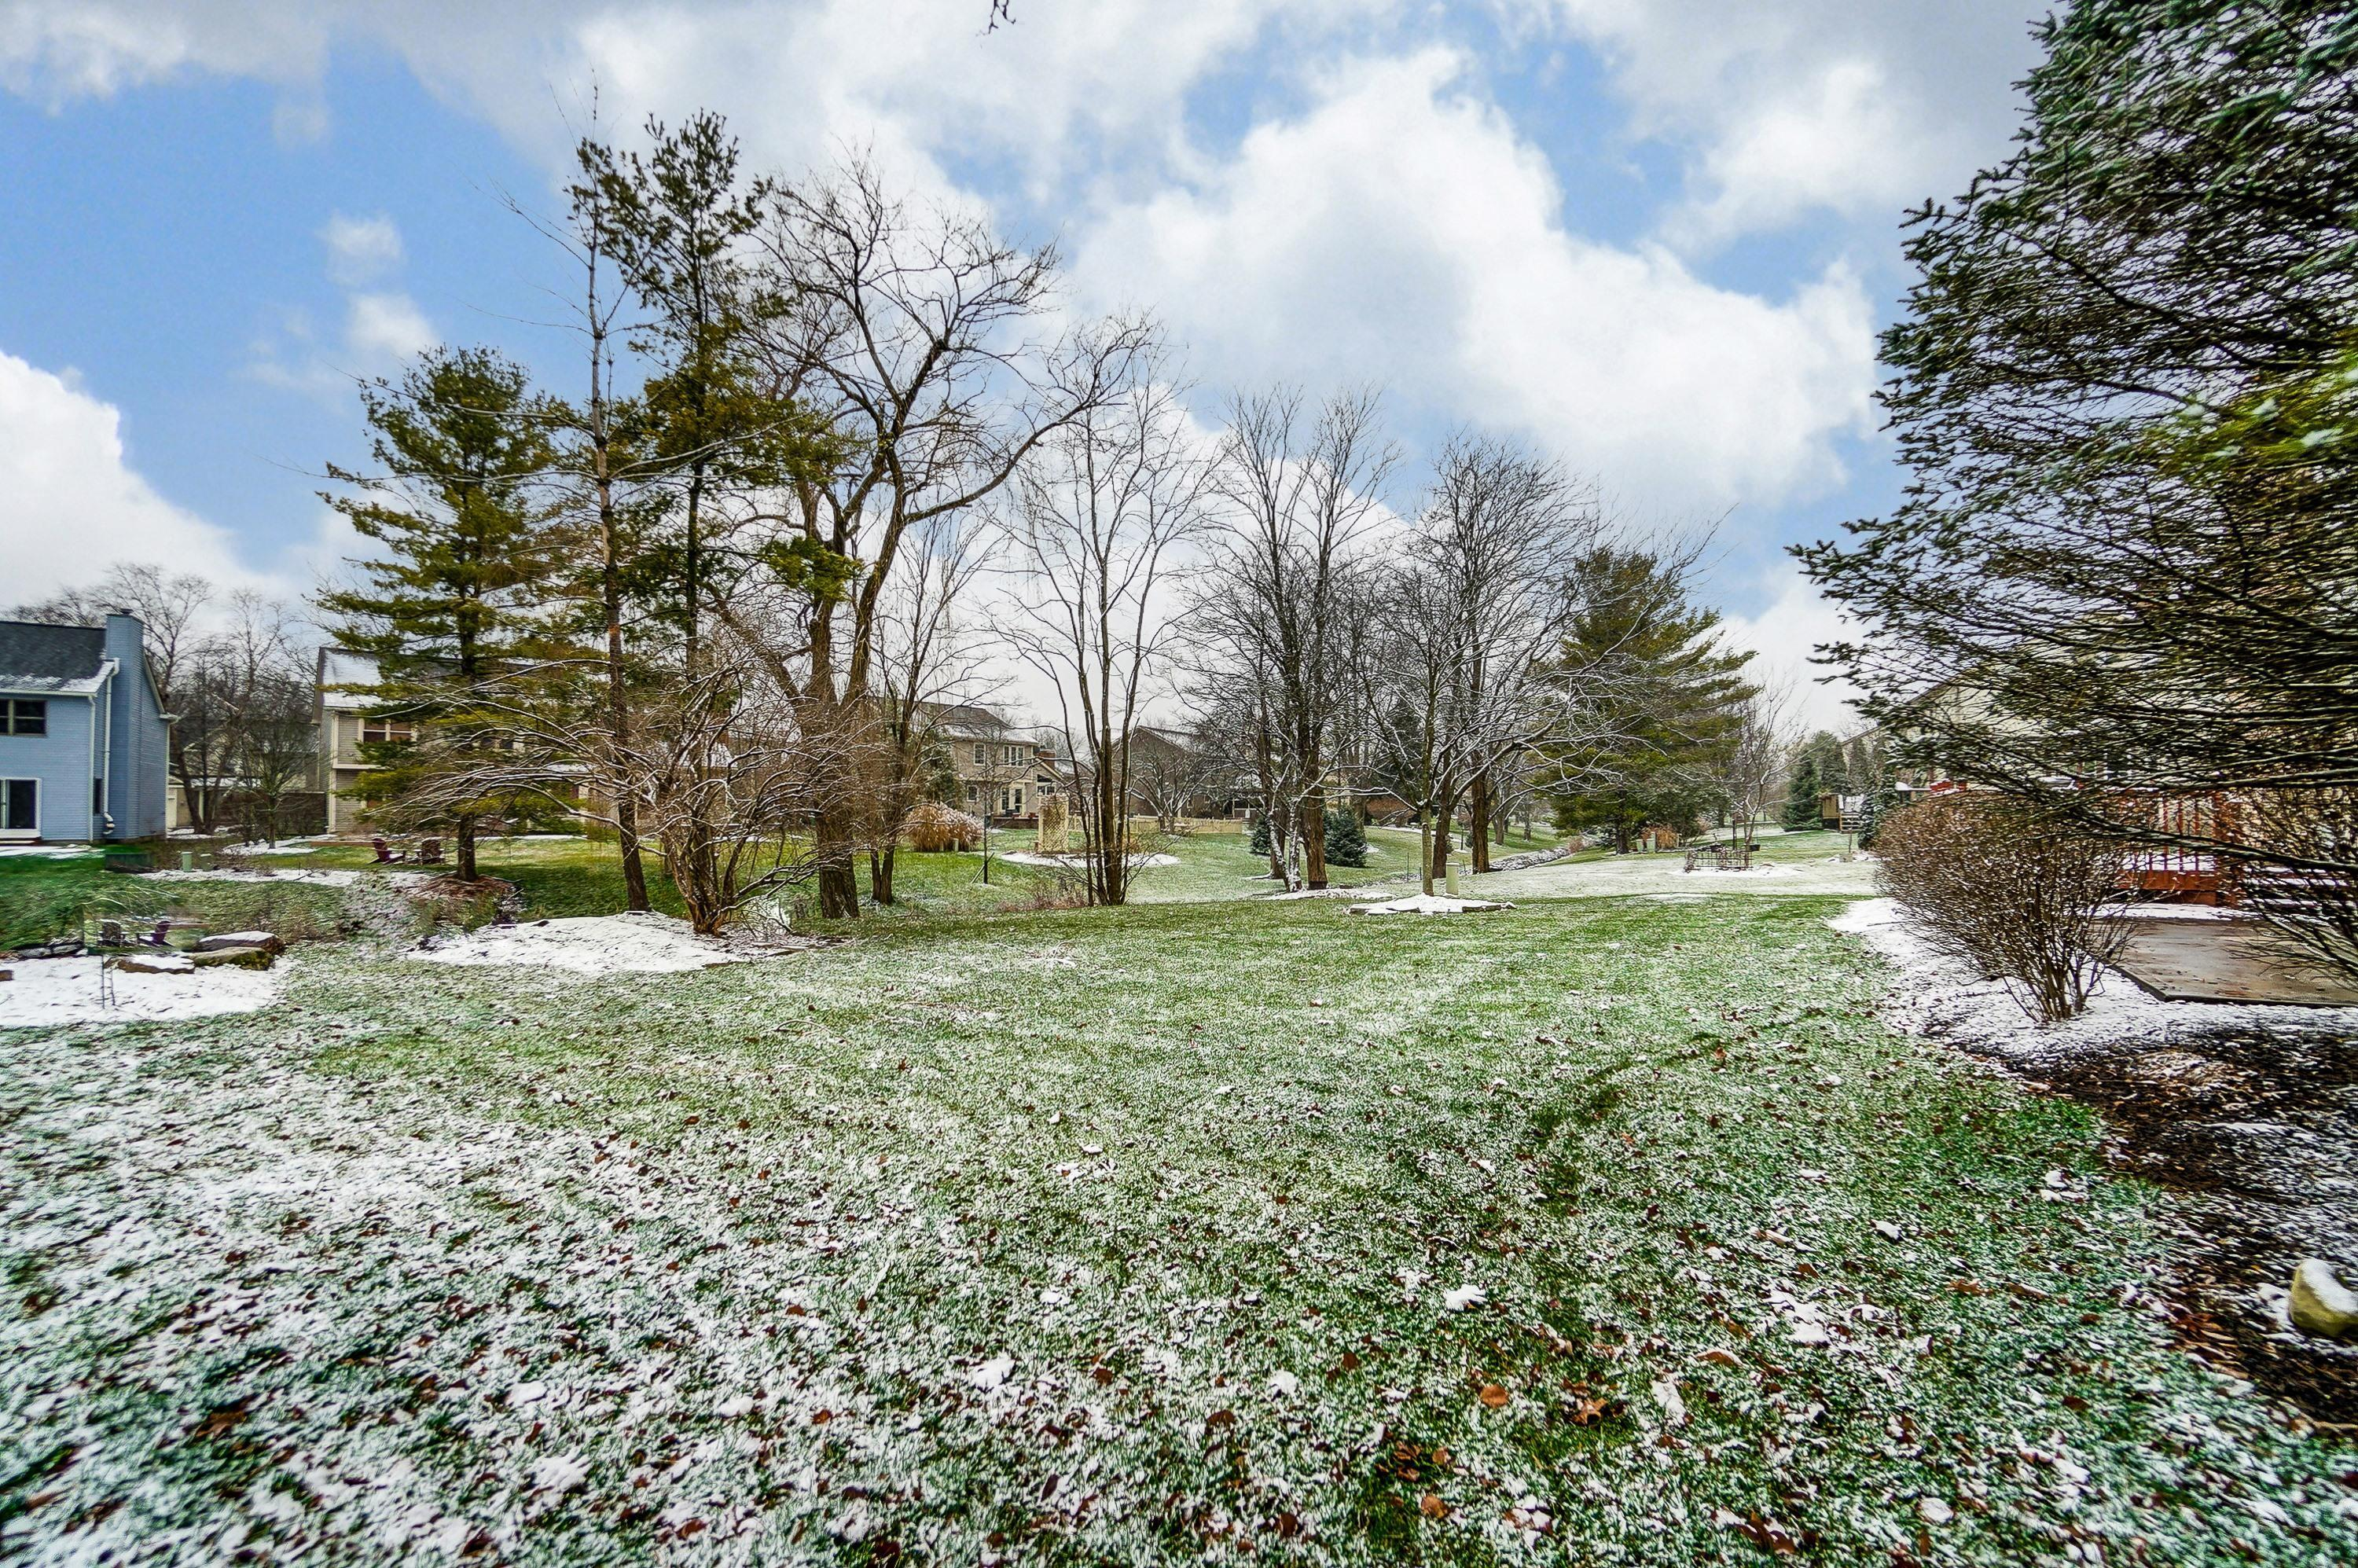 5629 Dublinshire Drive, Dublin, Ohio 43017, 4 Bedrooms Bedrooms, ,3 BathroomsBathrooms,Residential,For Sale,Dublinshire,220043390